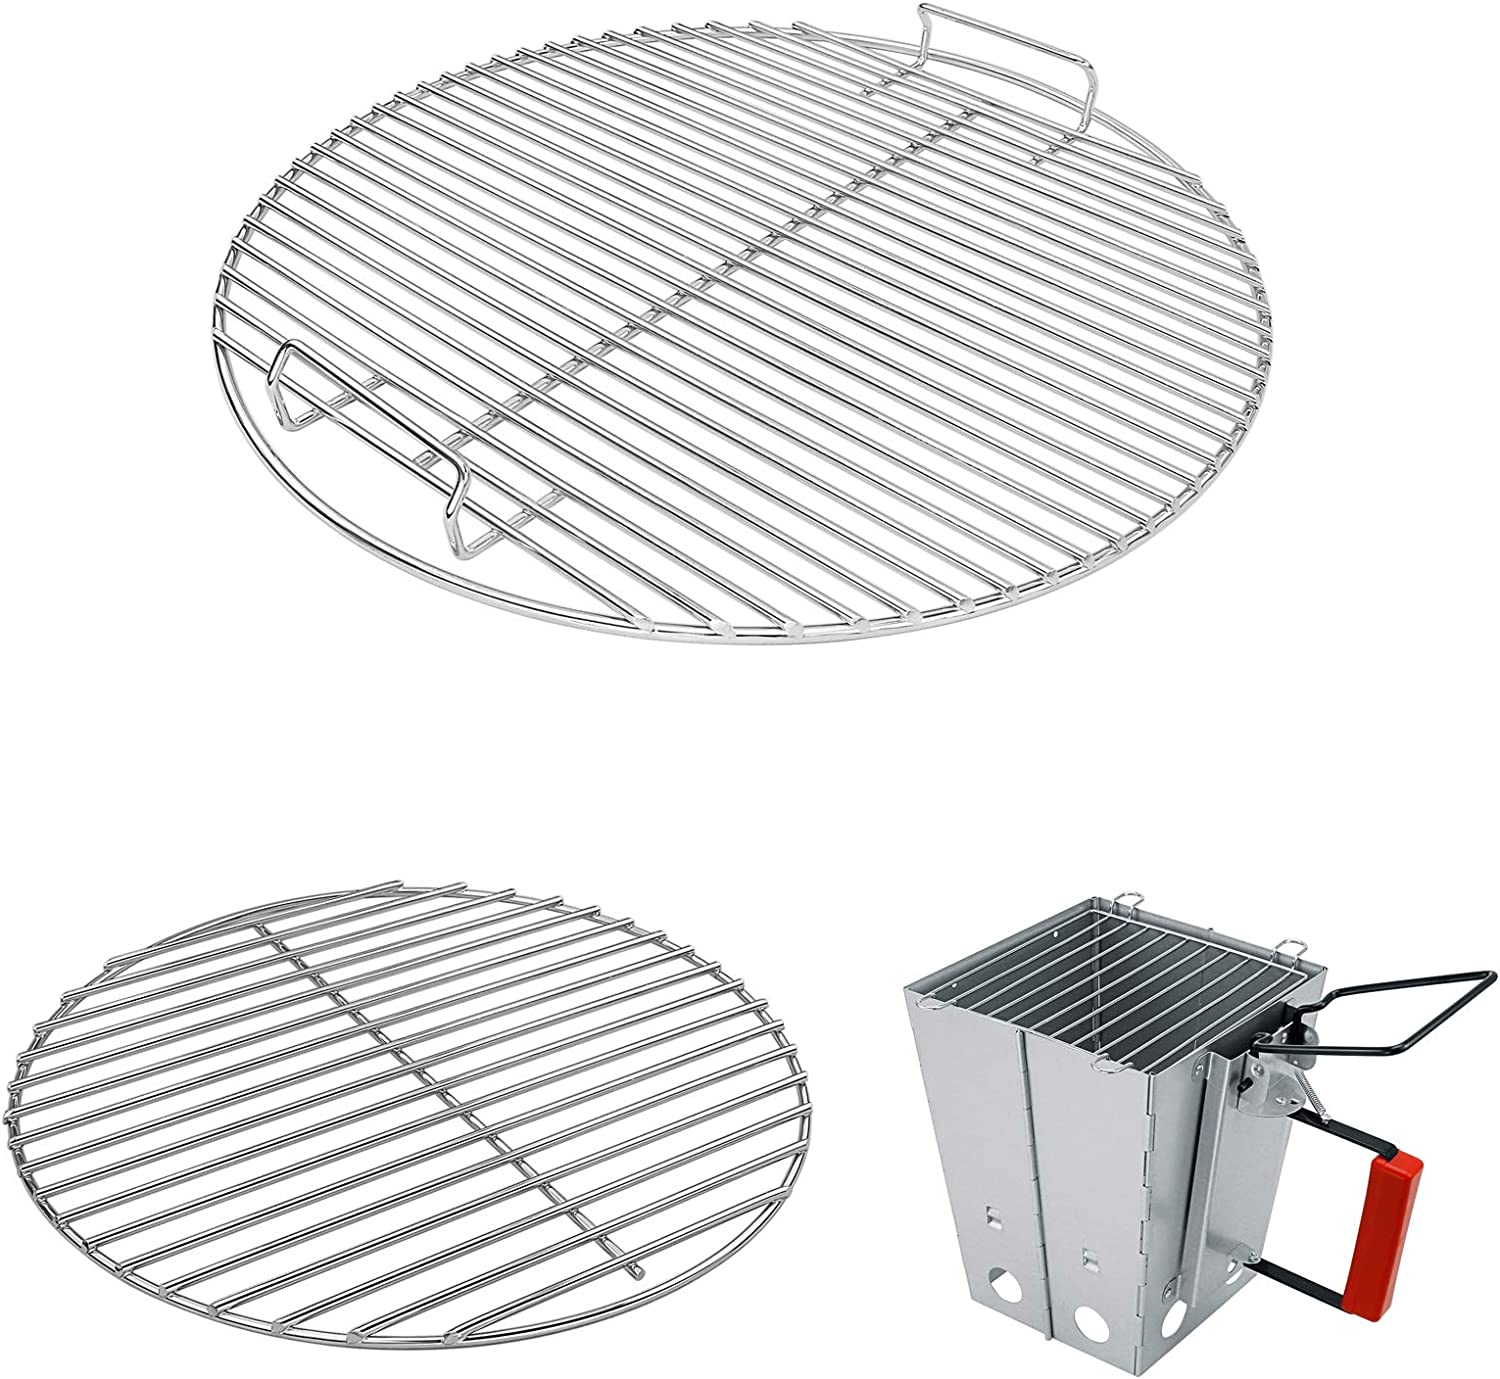 Hisencn Grill Grate, Charcoal Grid for Weber 18.5